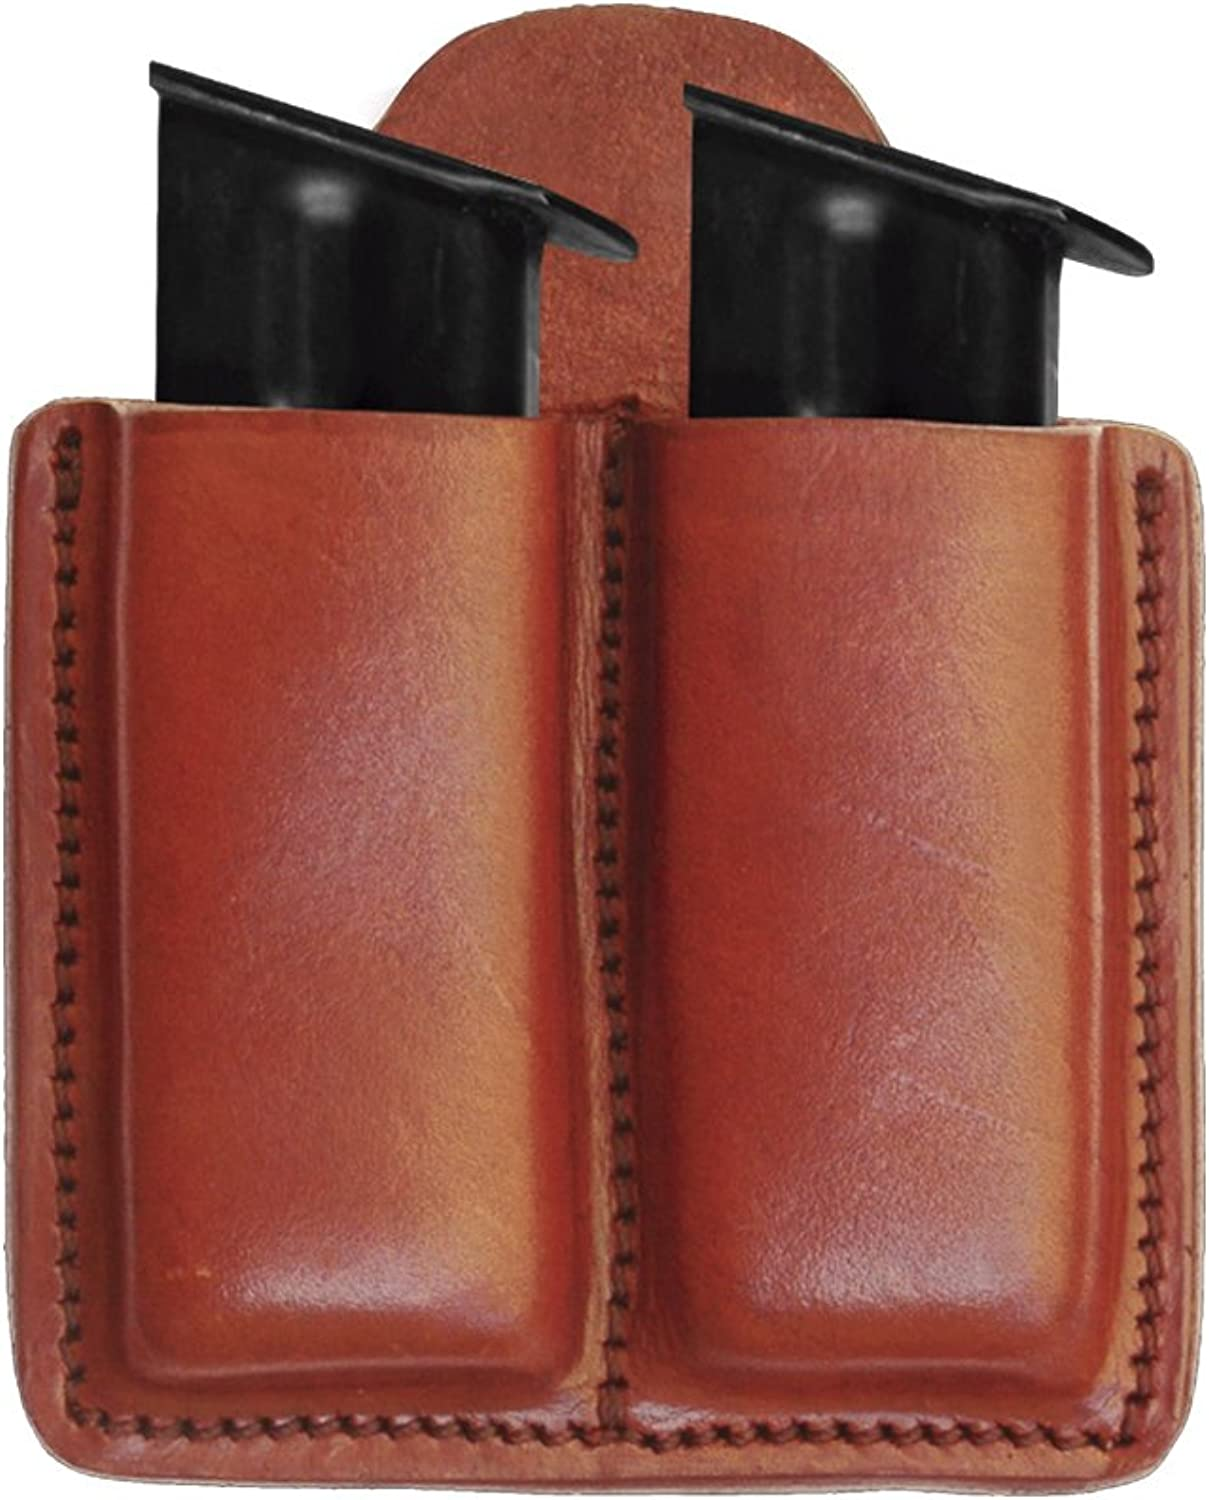 Tagua Double Mag Carrier Fits Glocks HK's Springfield 9mm